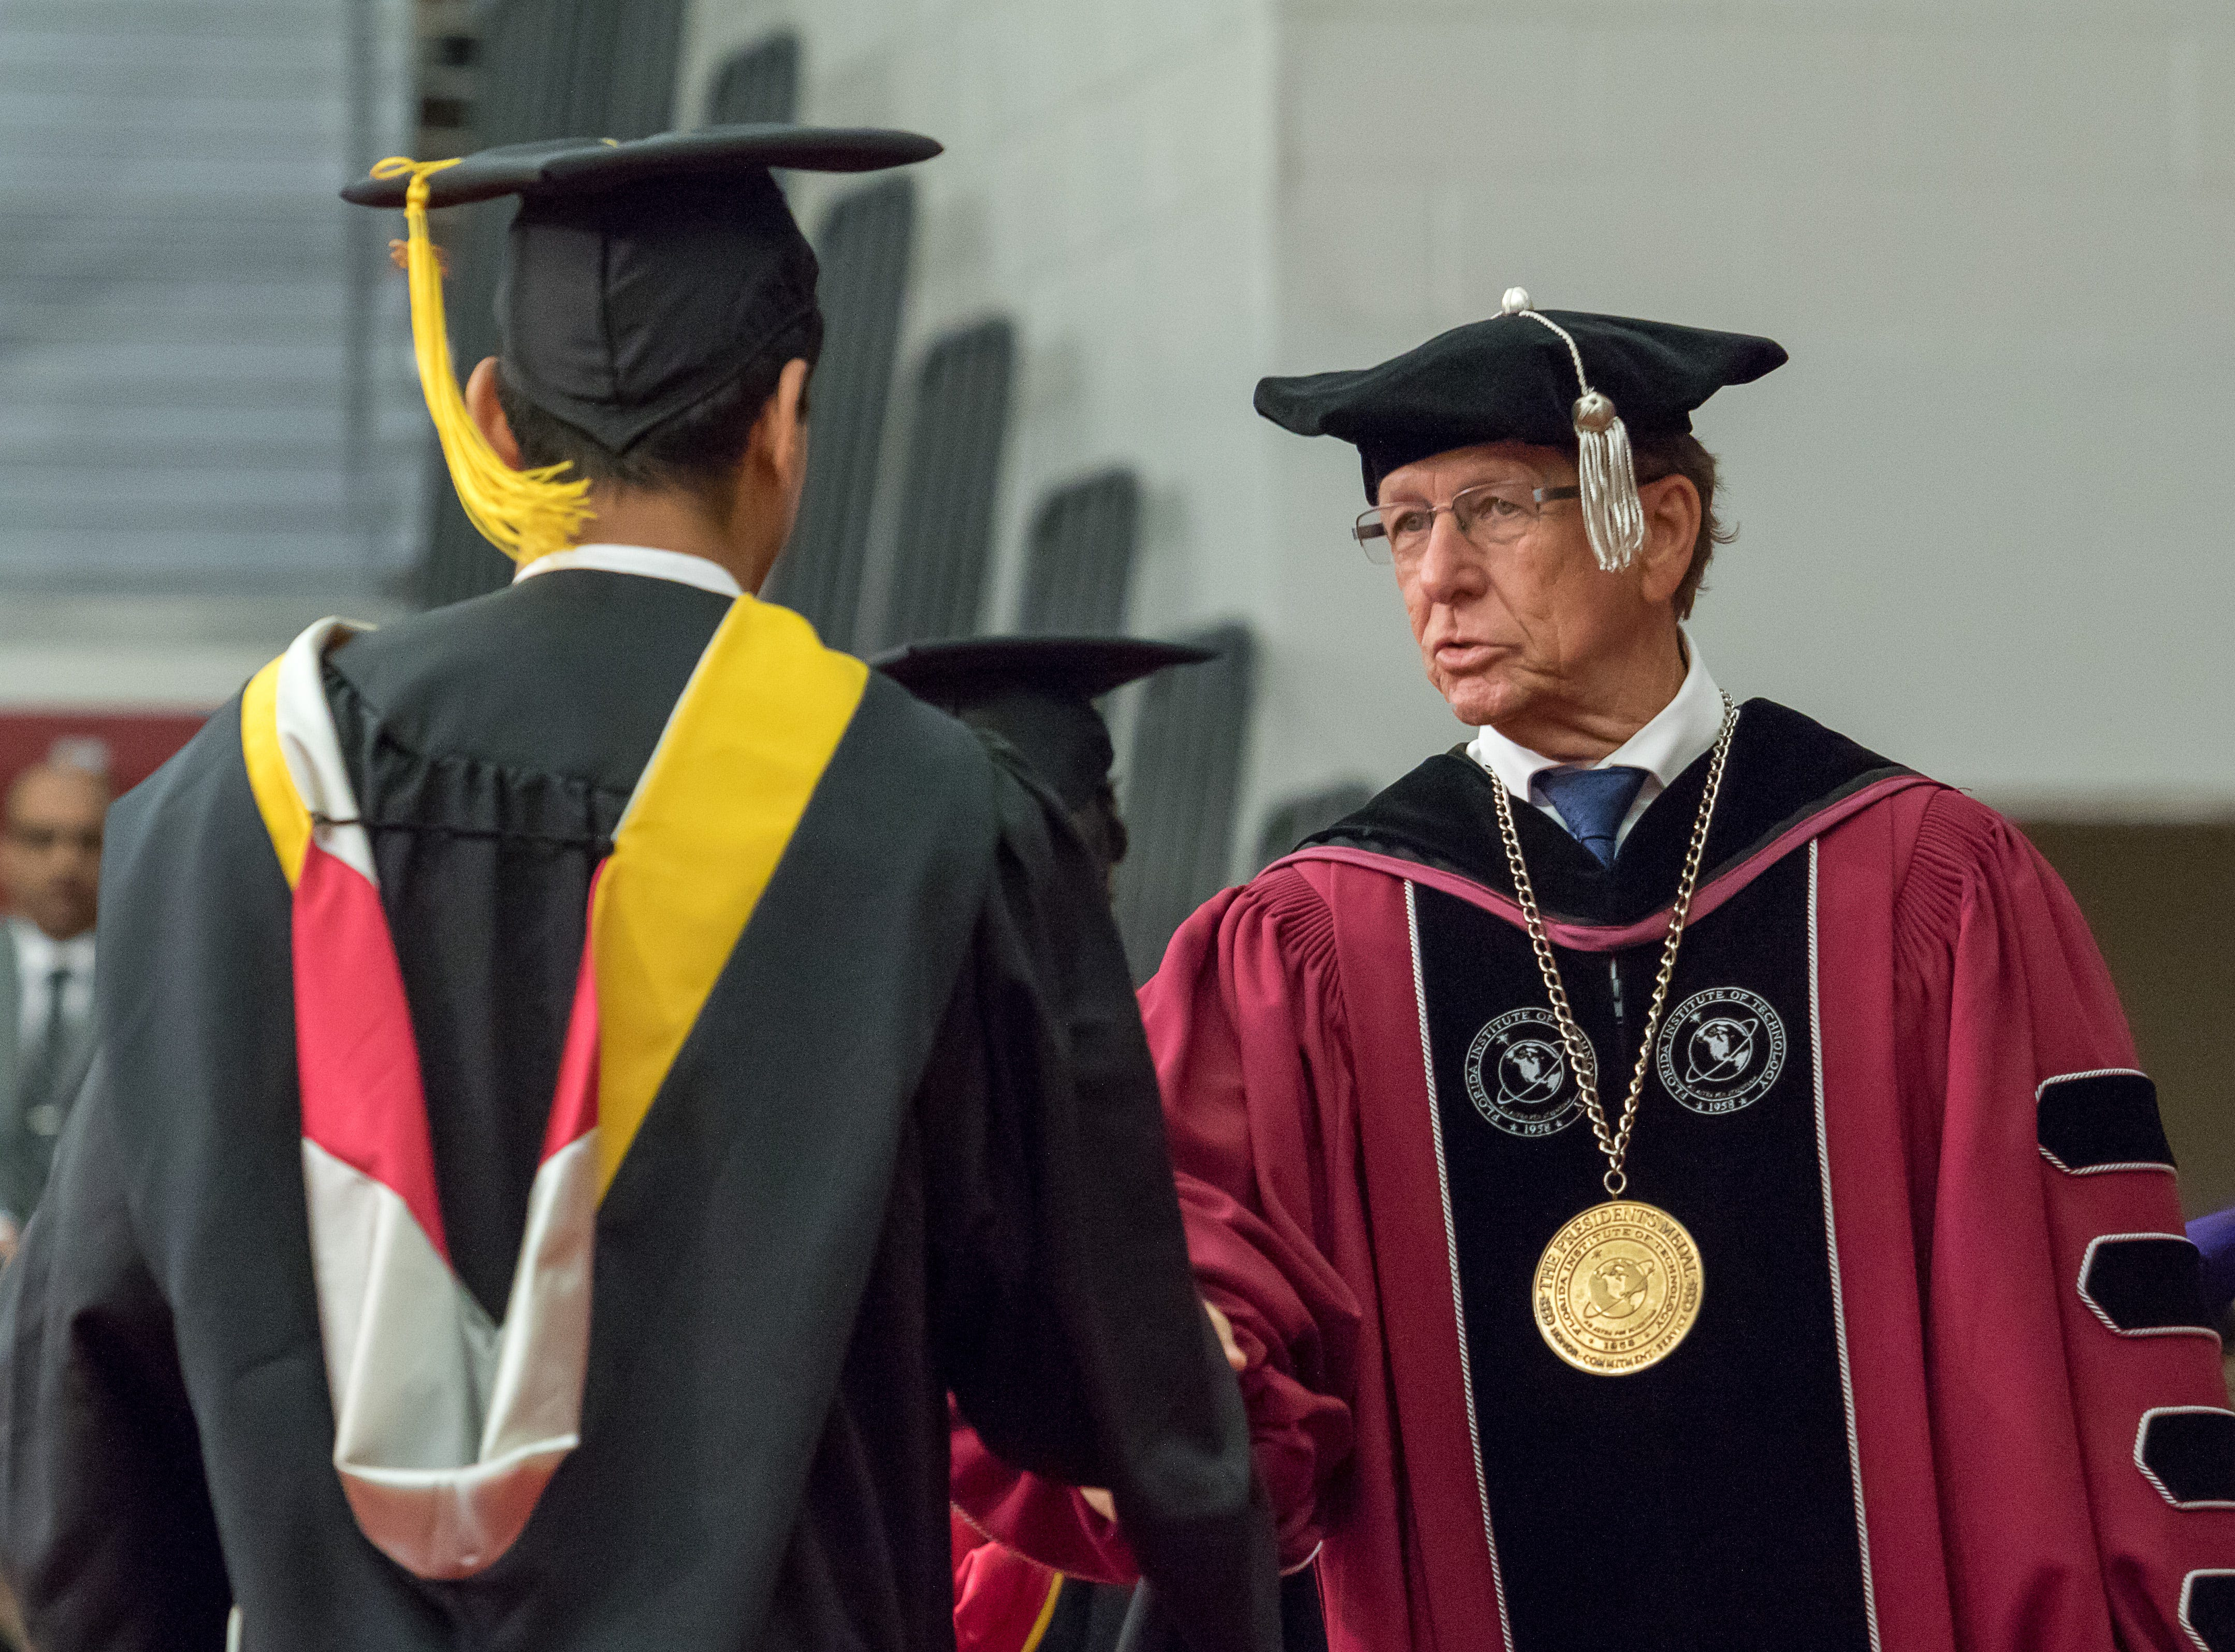 Florida Tech president Dwayne McCay spoke to students at the university's commencement ceremony Saturday.